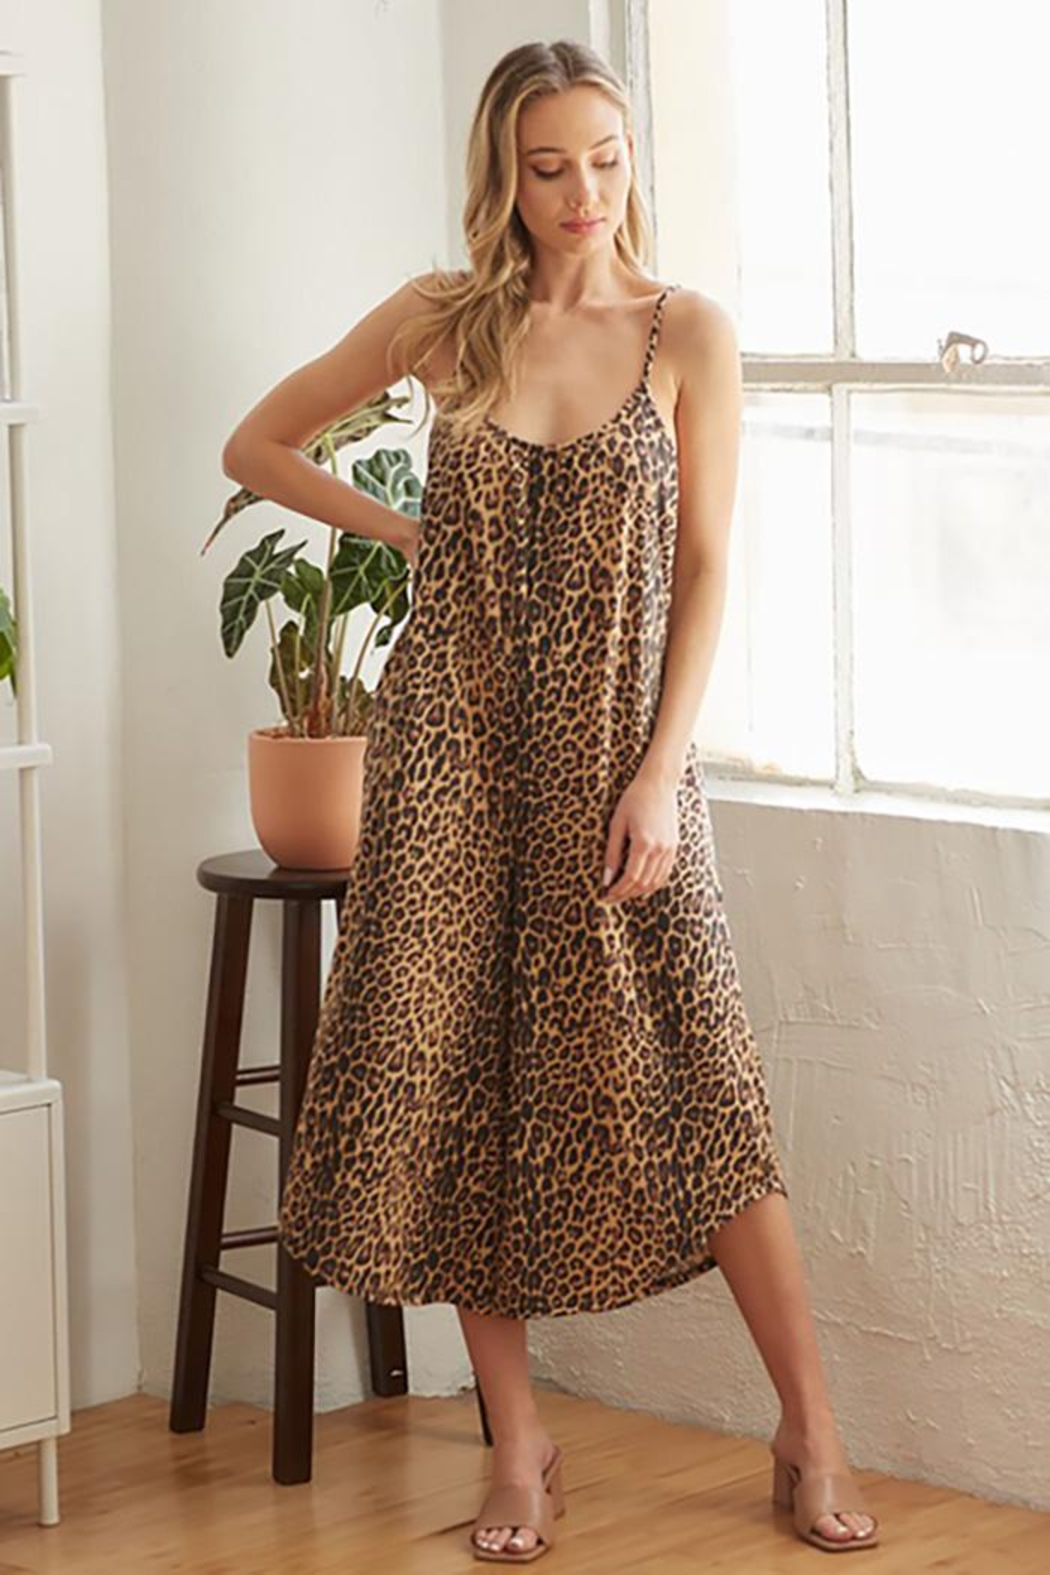 CY Fashion Cheetah Print Romper With Spaghetti Straps - Main Image